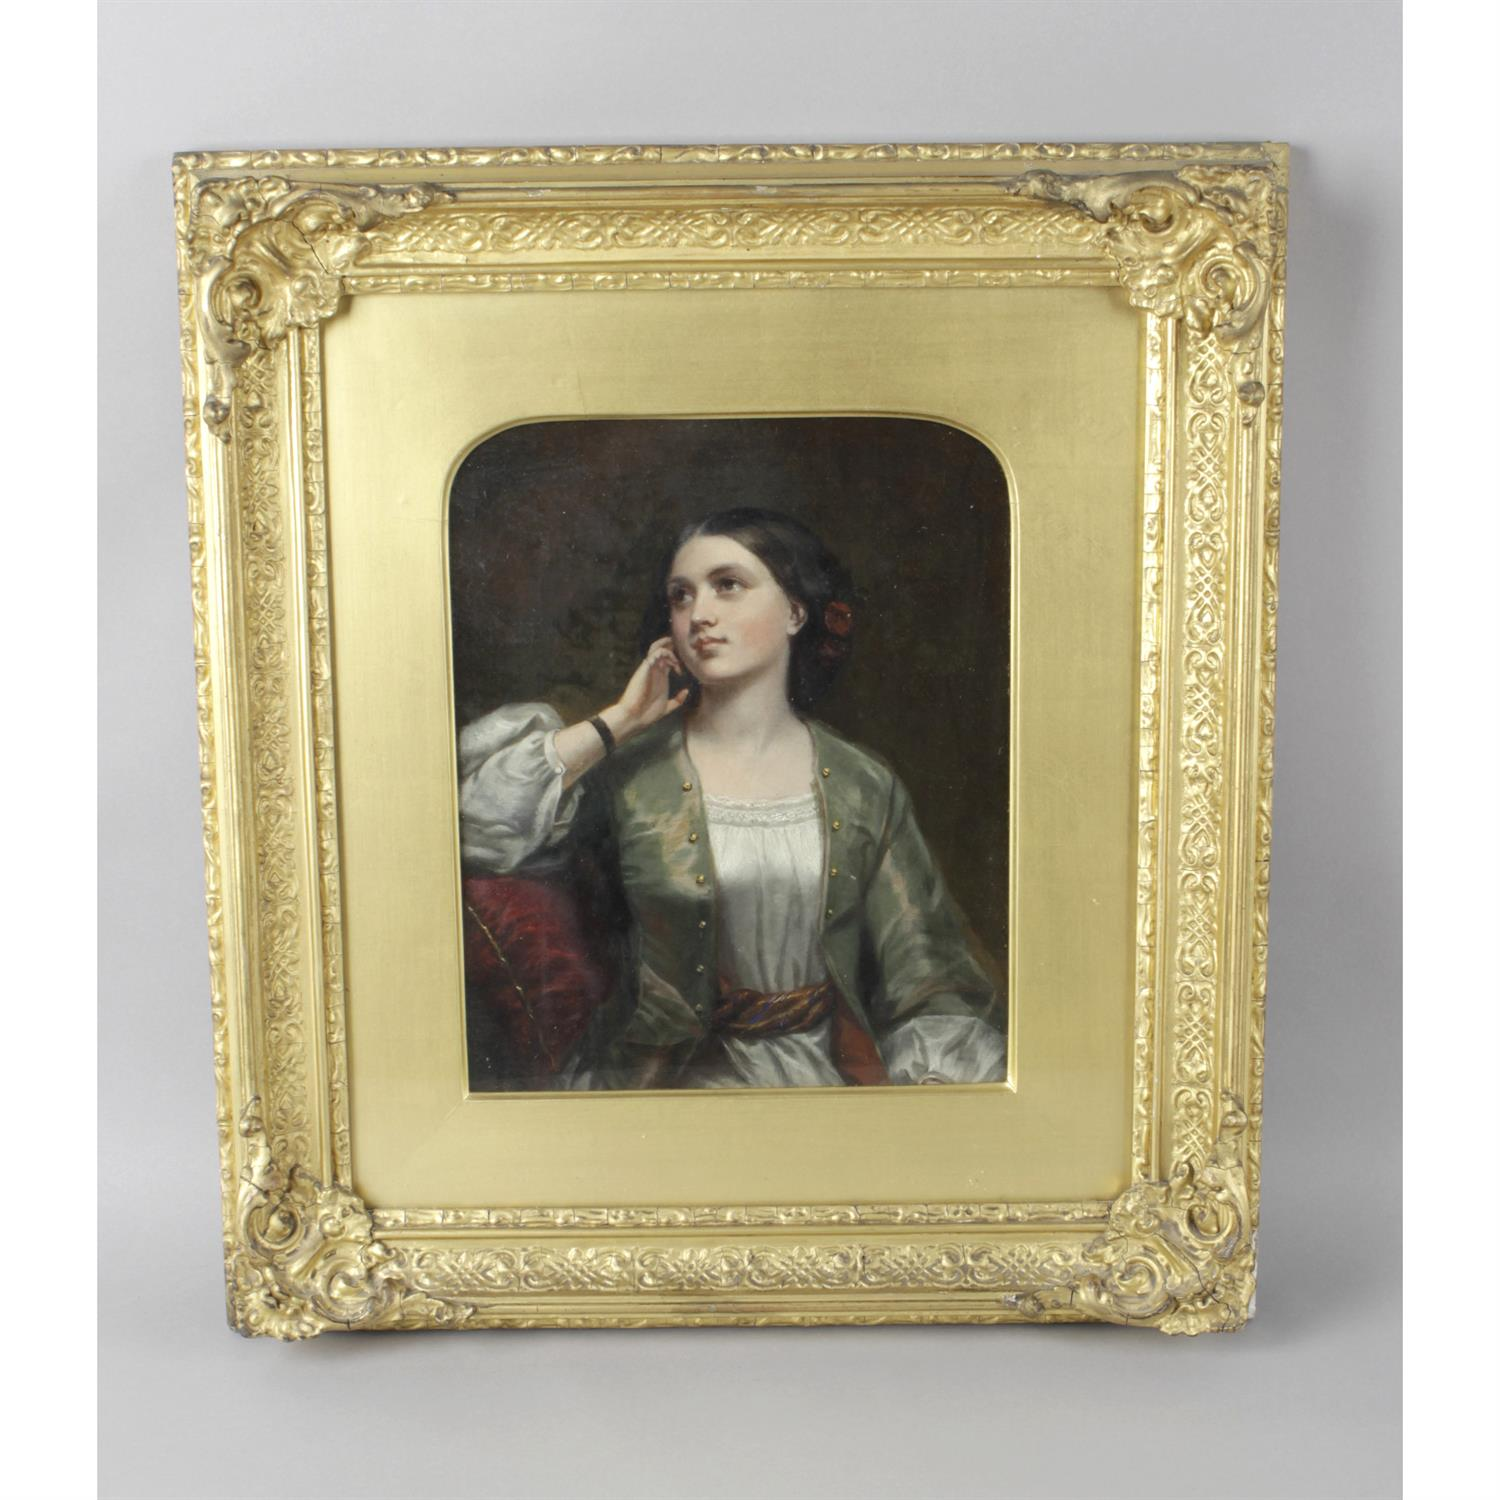 19th century oil painting on canvas, half length portrait of a young lady - Image 2 of 2